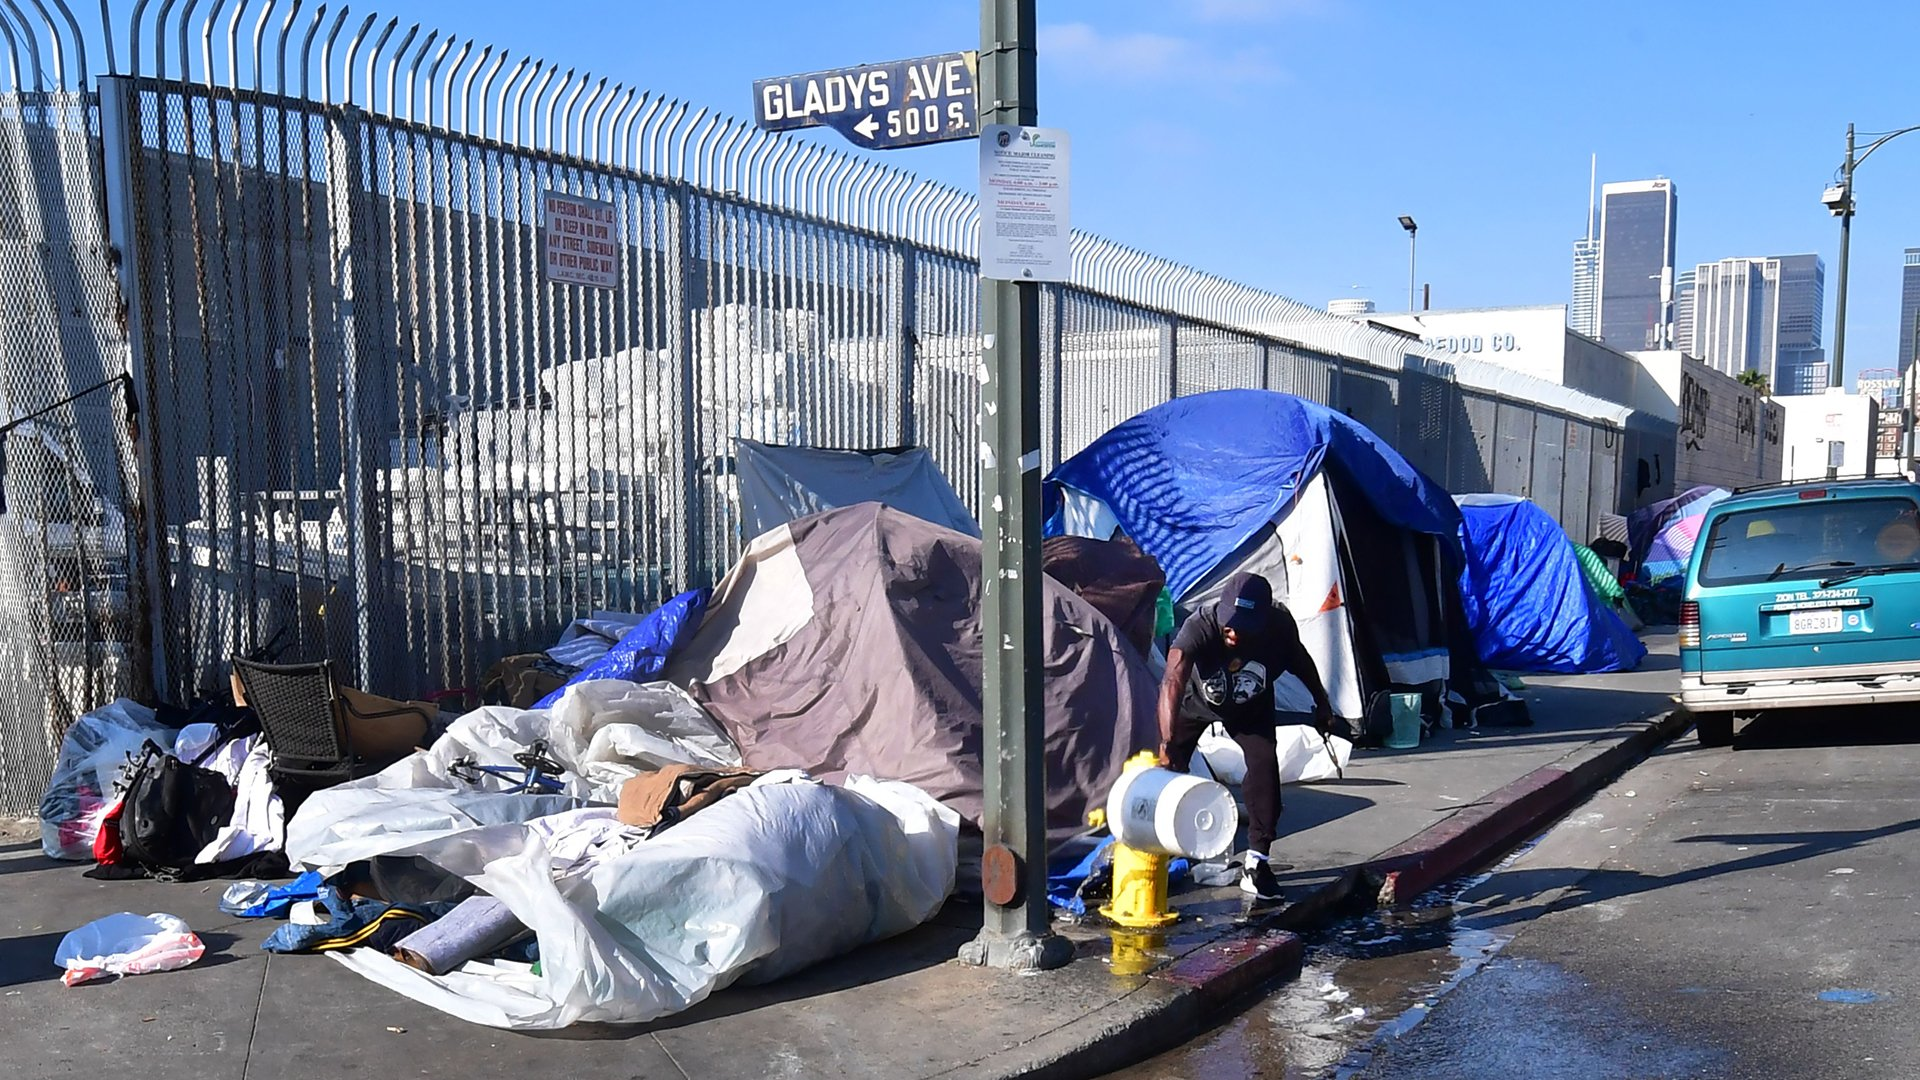 Tents of the homeless line a street corner in Los Angeles on Jan. 8, 2020. (Credit: Frederic J. BROWN / Getty)